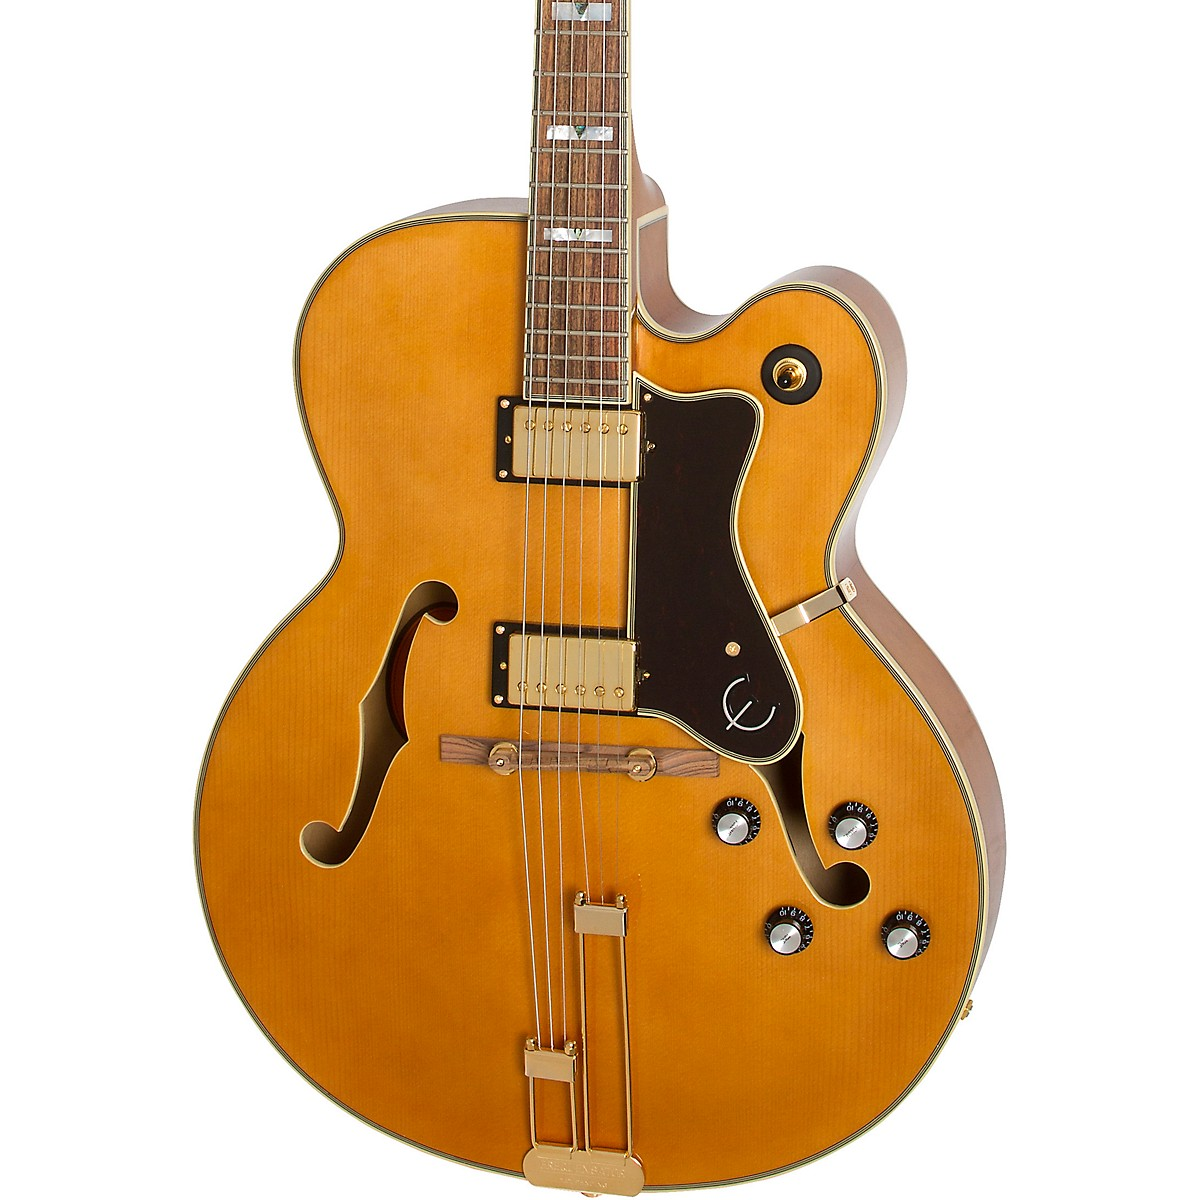 Epiphone Broadway Hollowbody Electric Guitar